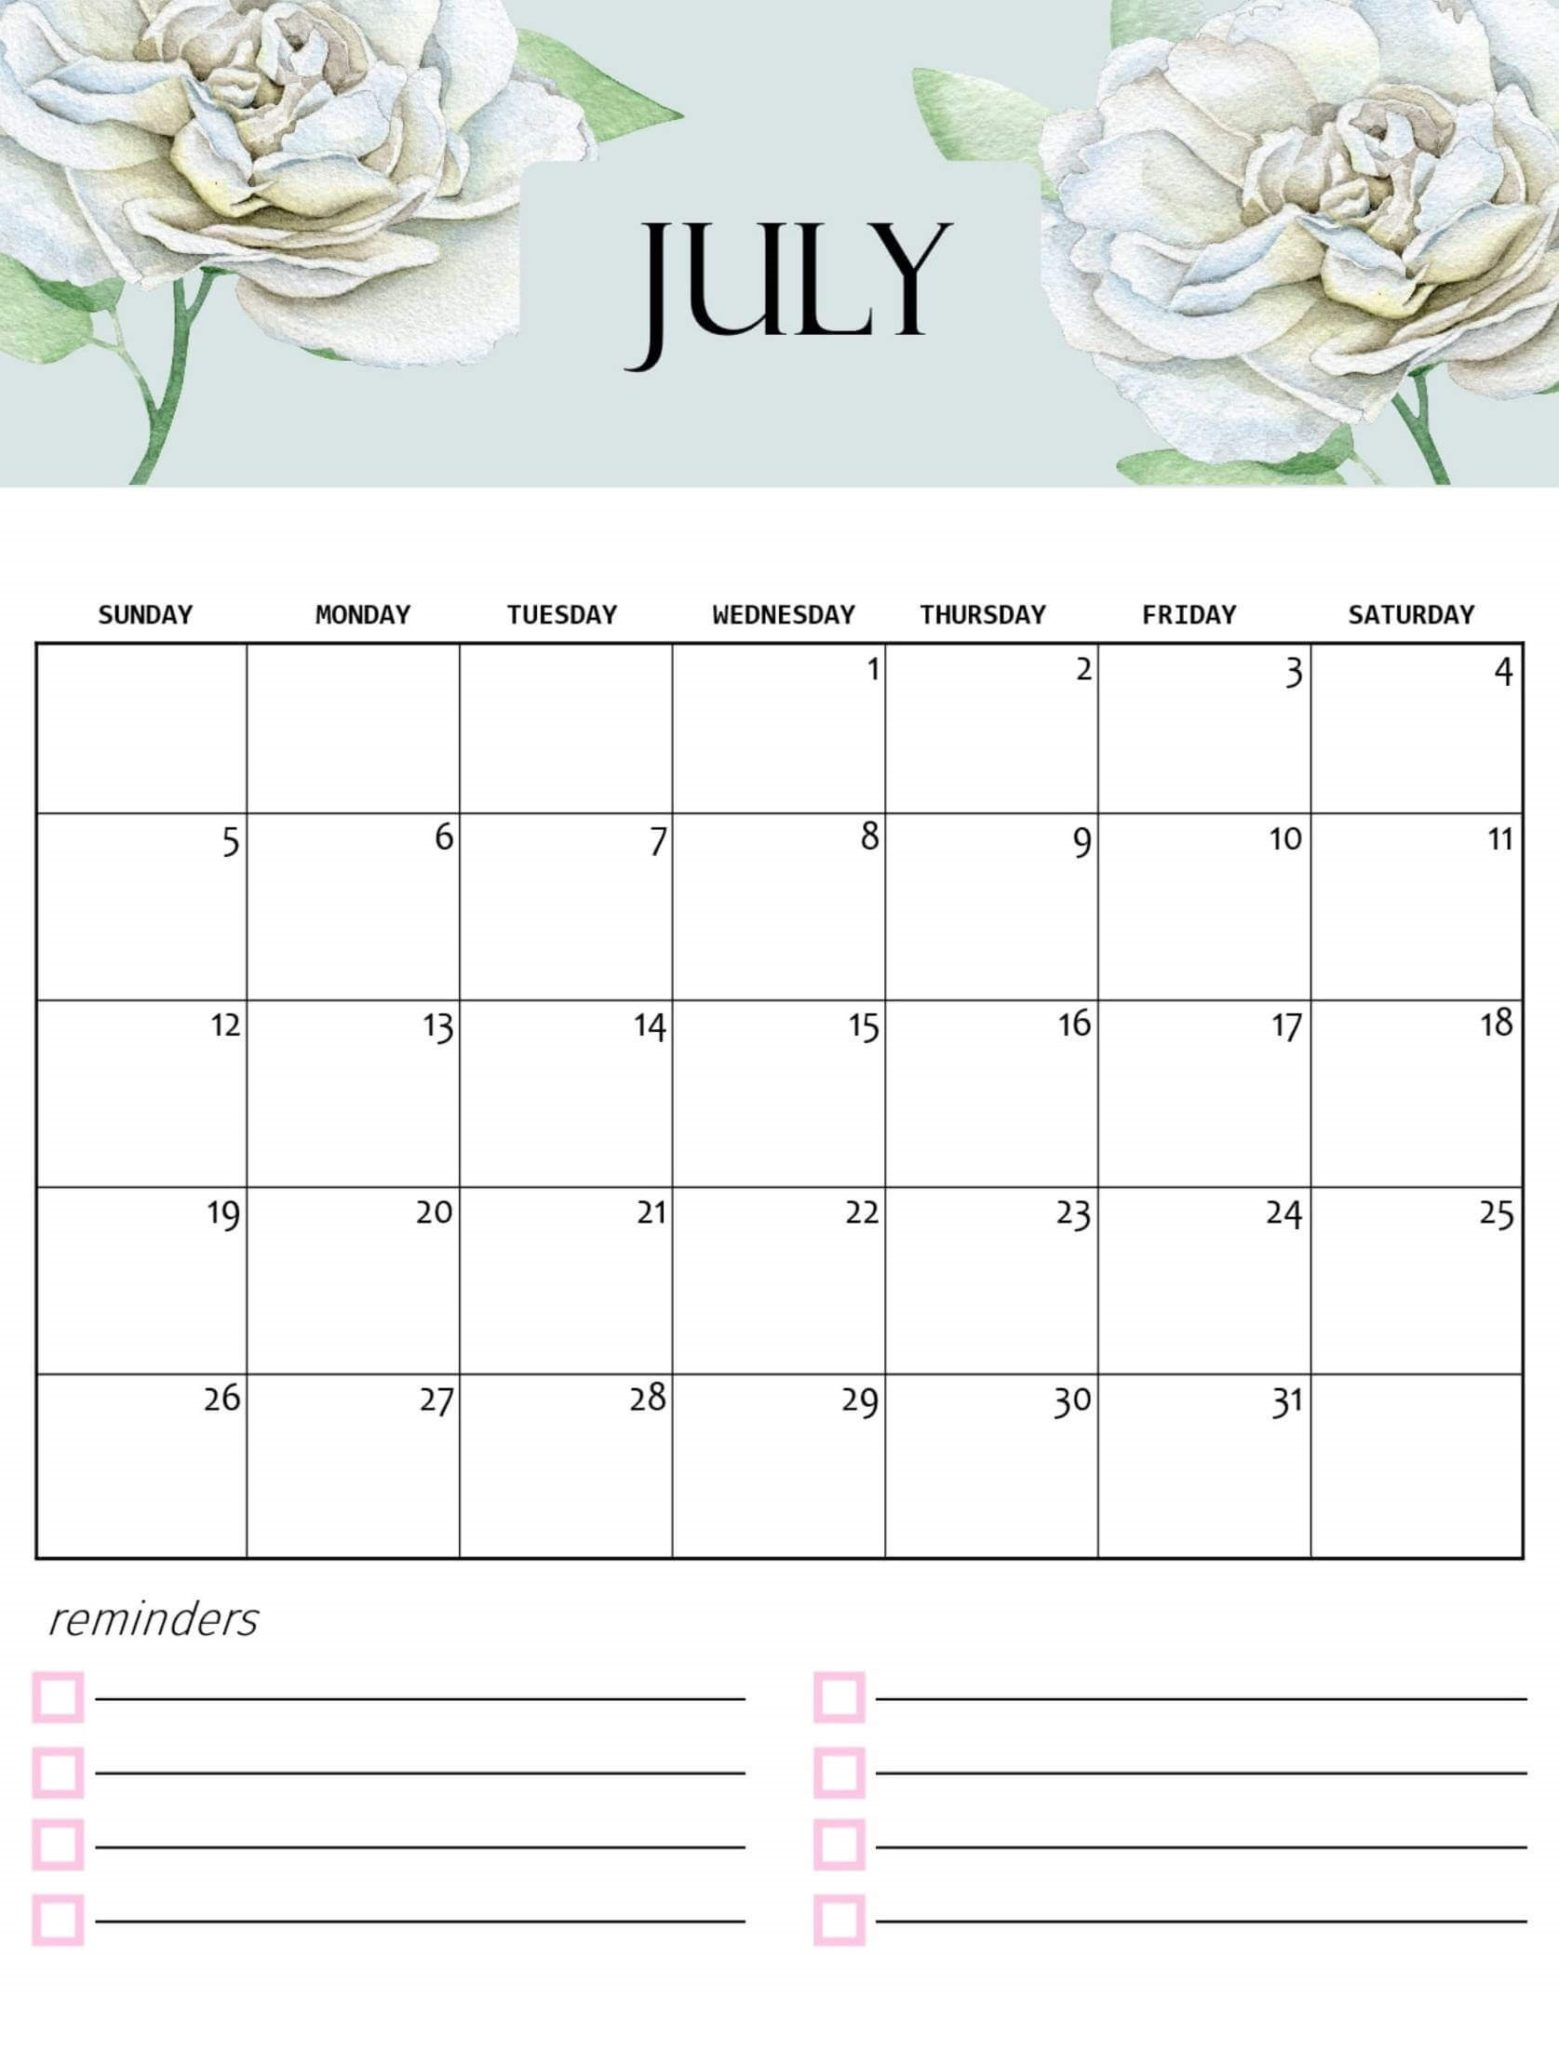 July 2020 Flower Calendar Design